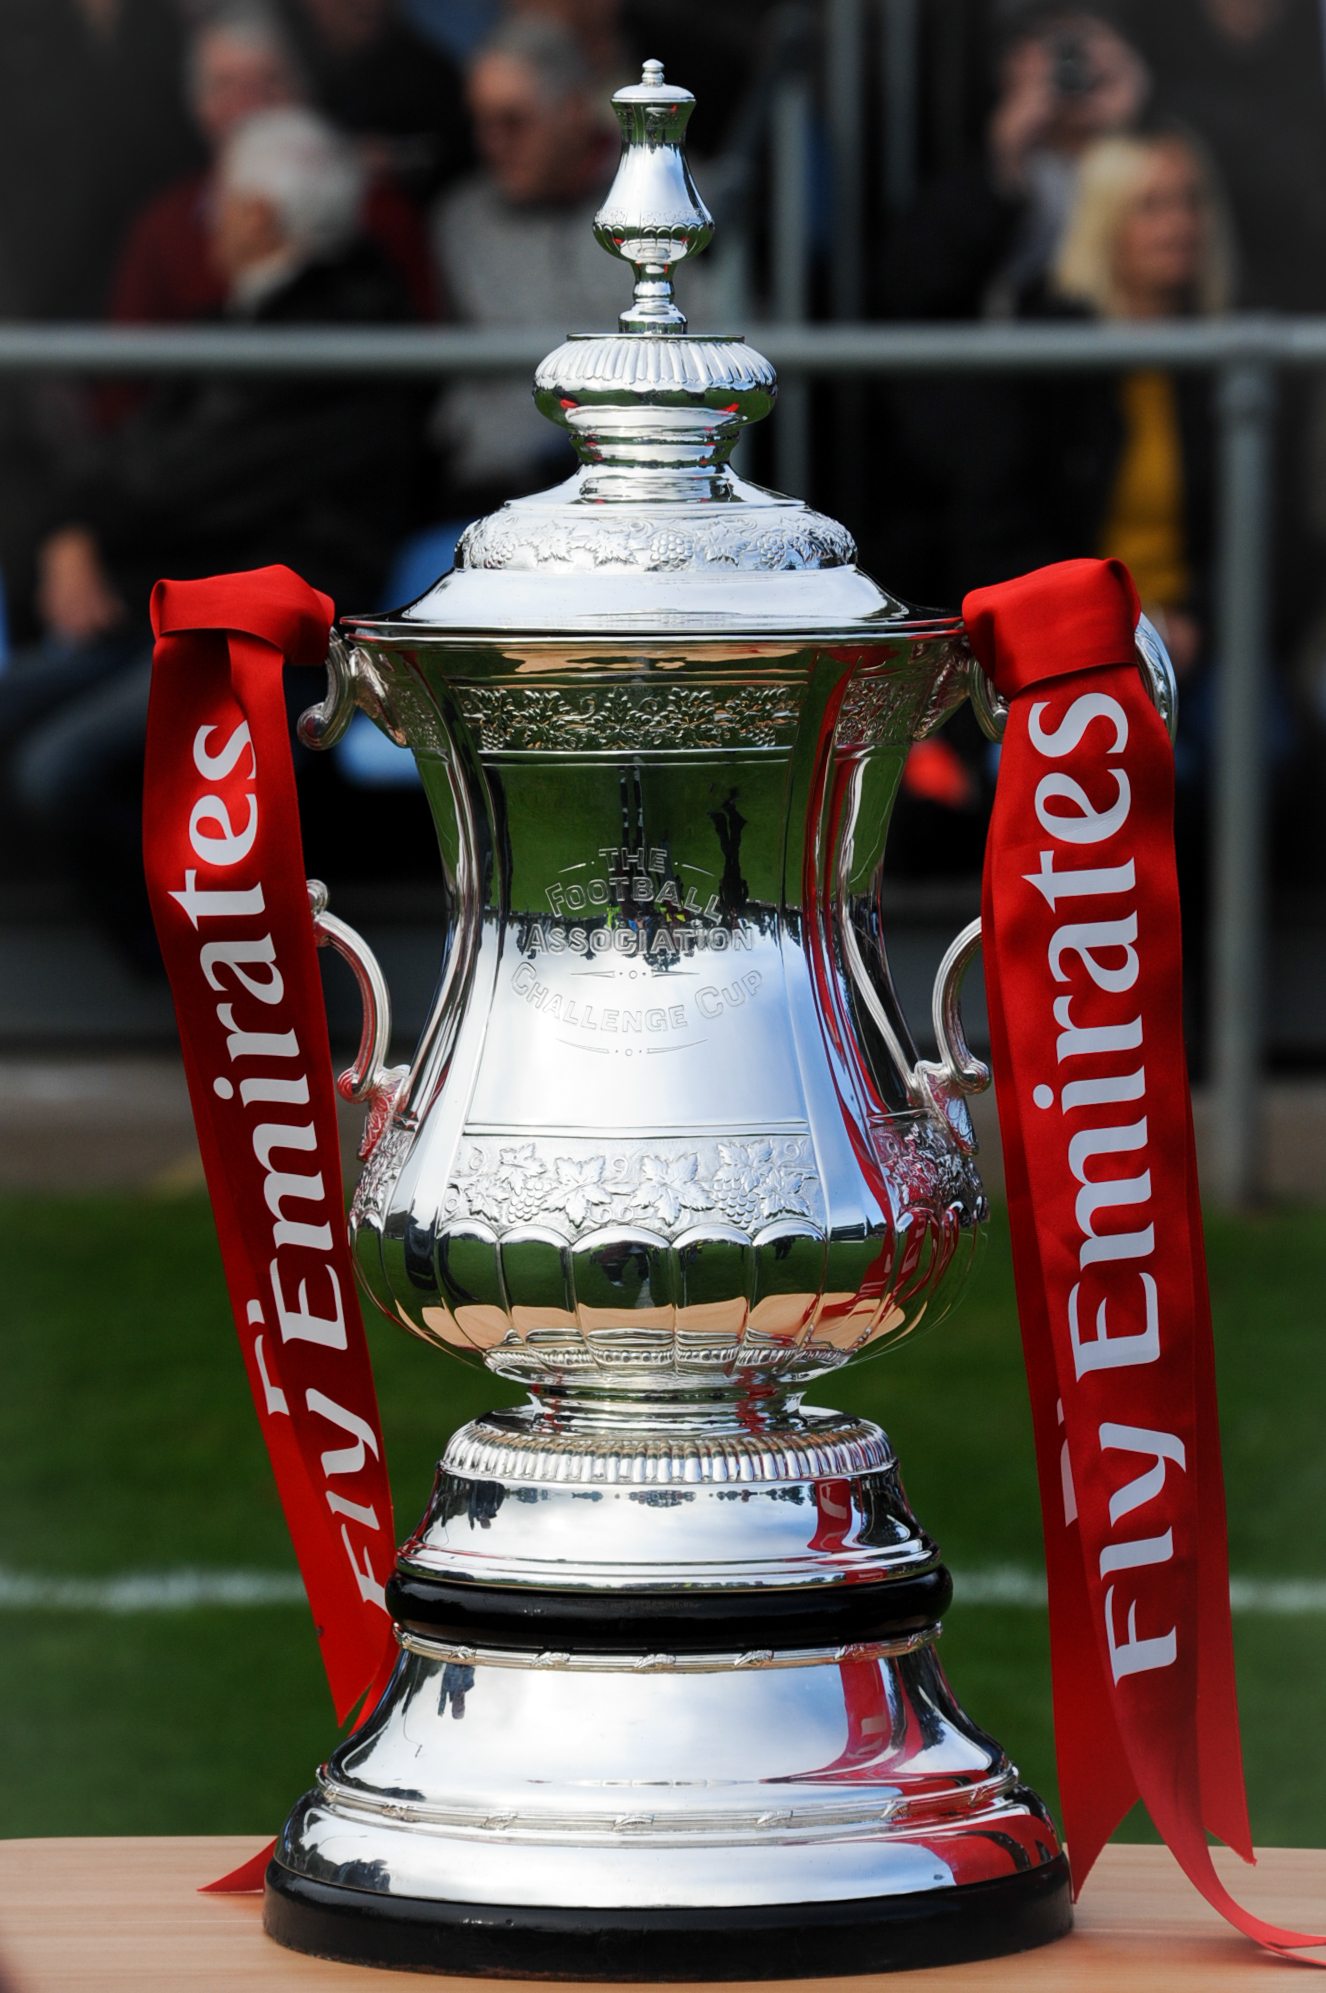 Hereford are due to face Eastleigh in the FA Cup on Saturday